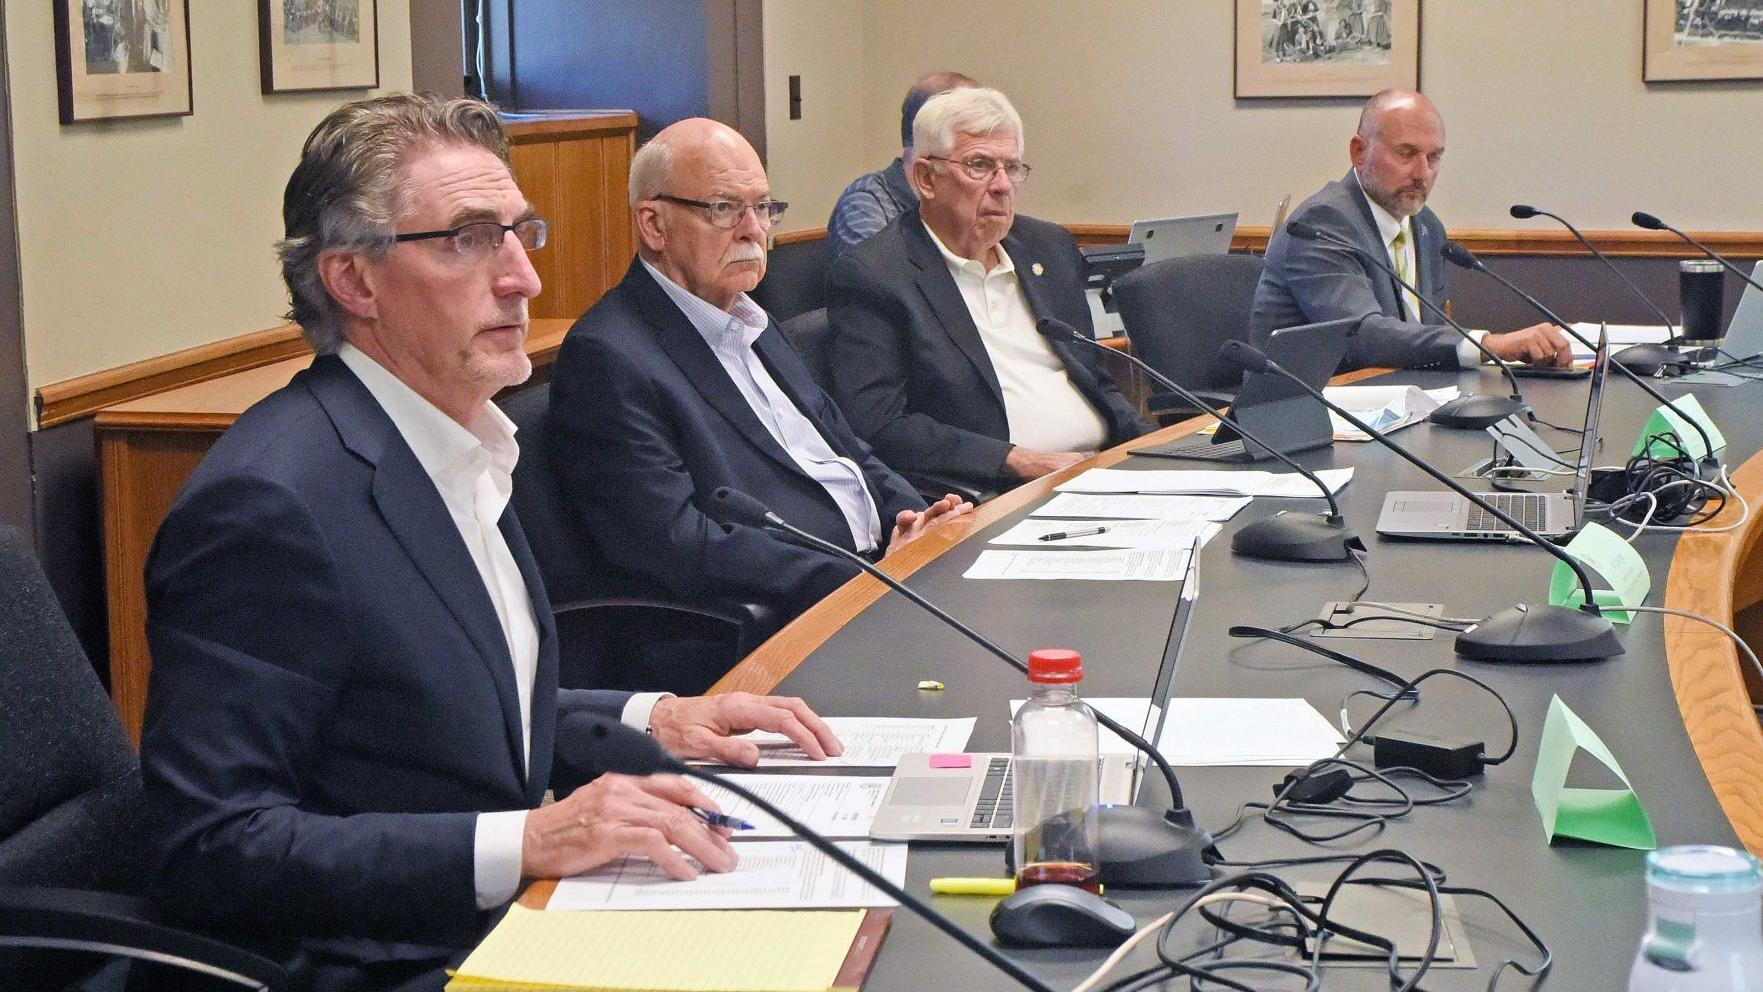 Emergency Commission requests go over new cap; new law could spell special session